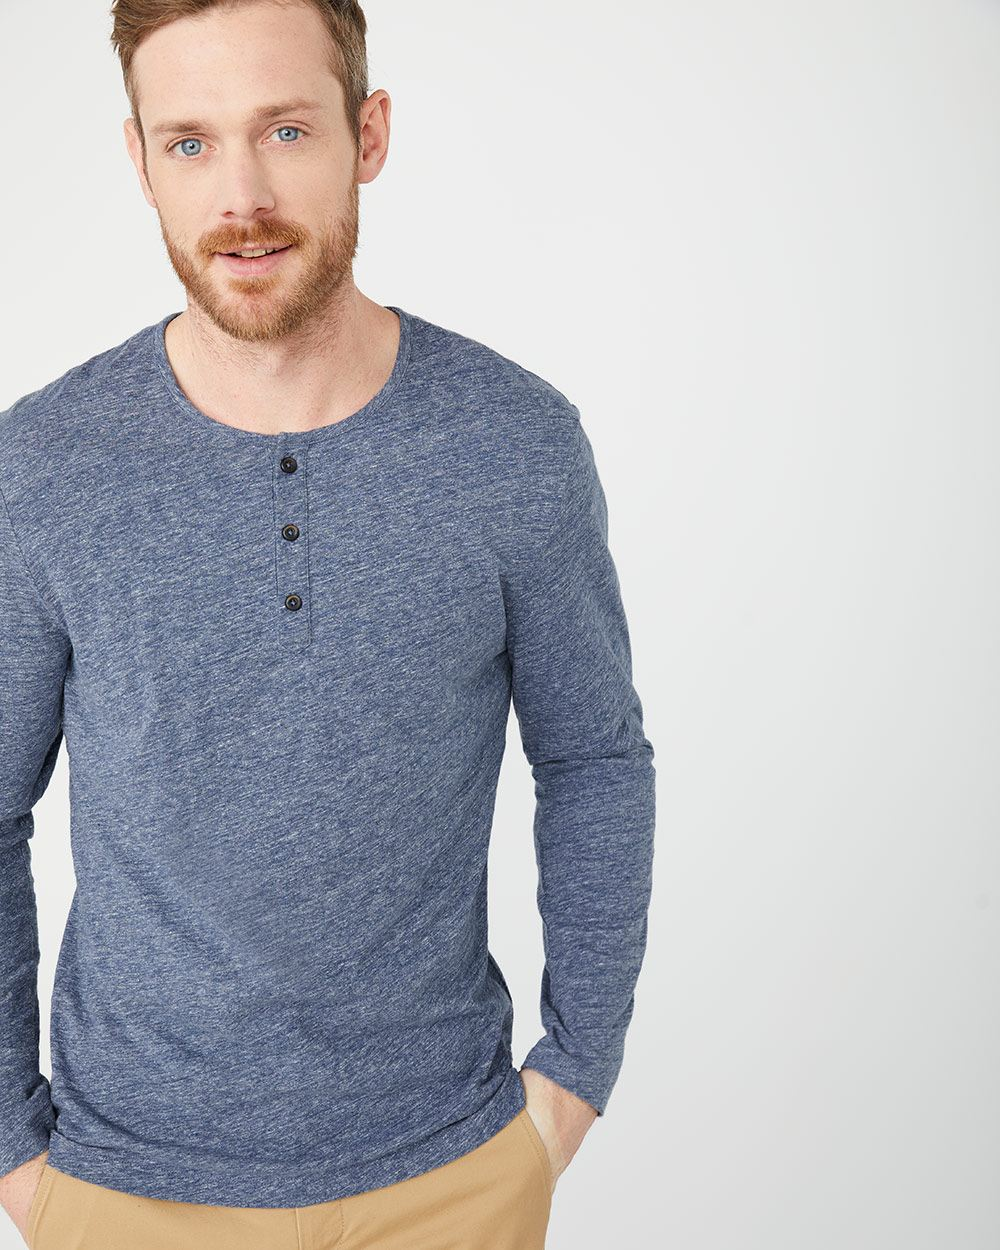 Heather Long sleeve henley t-shirt